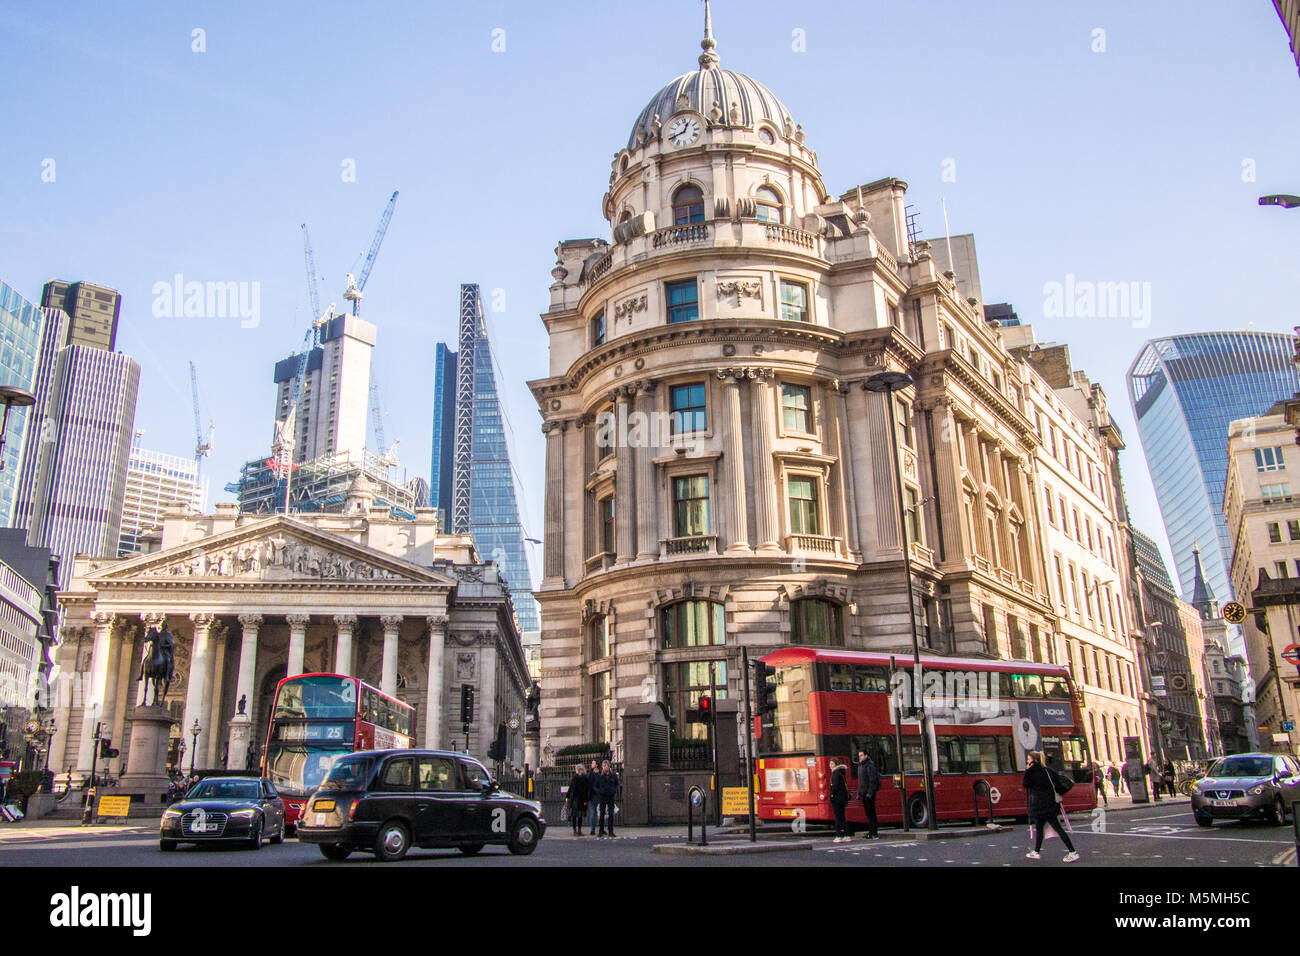 Royal Exchange (left) shopping centre with the famous sky scrapers of the 'Cheese Grater' (mid left) and - Stock Image